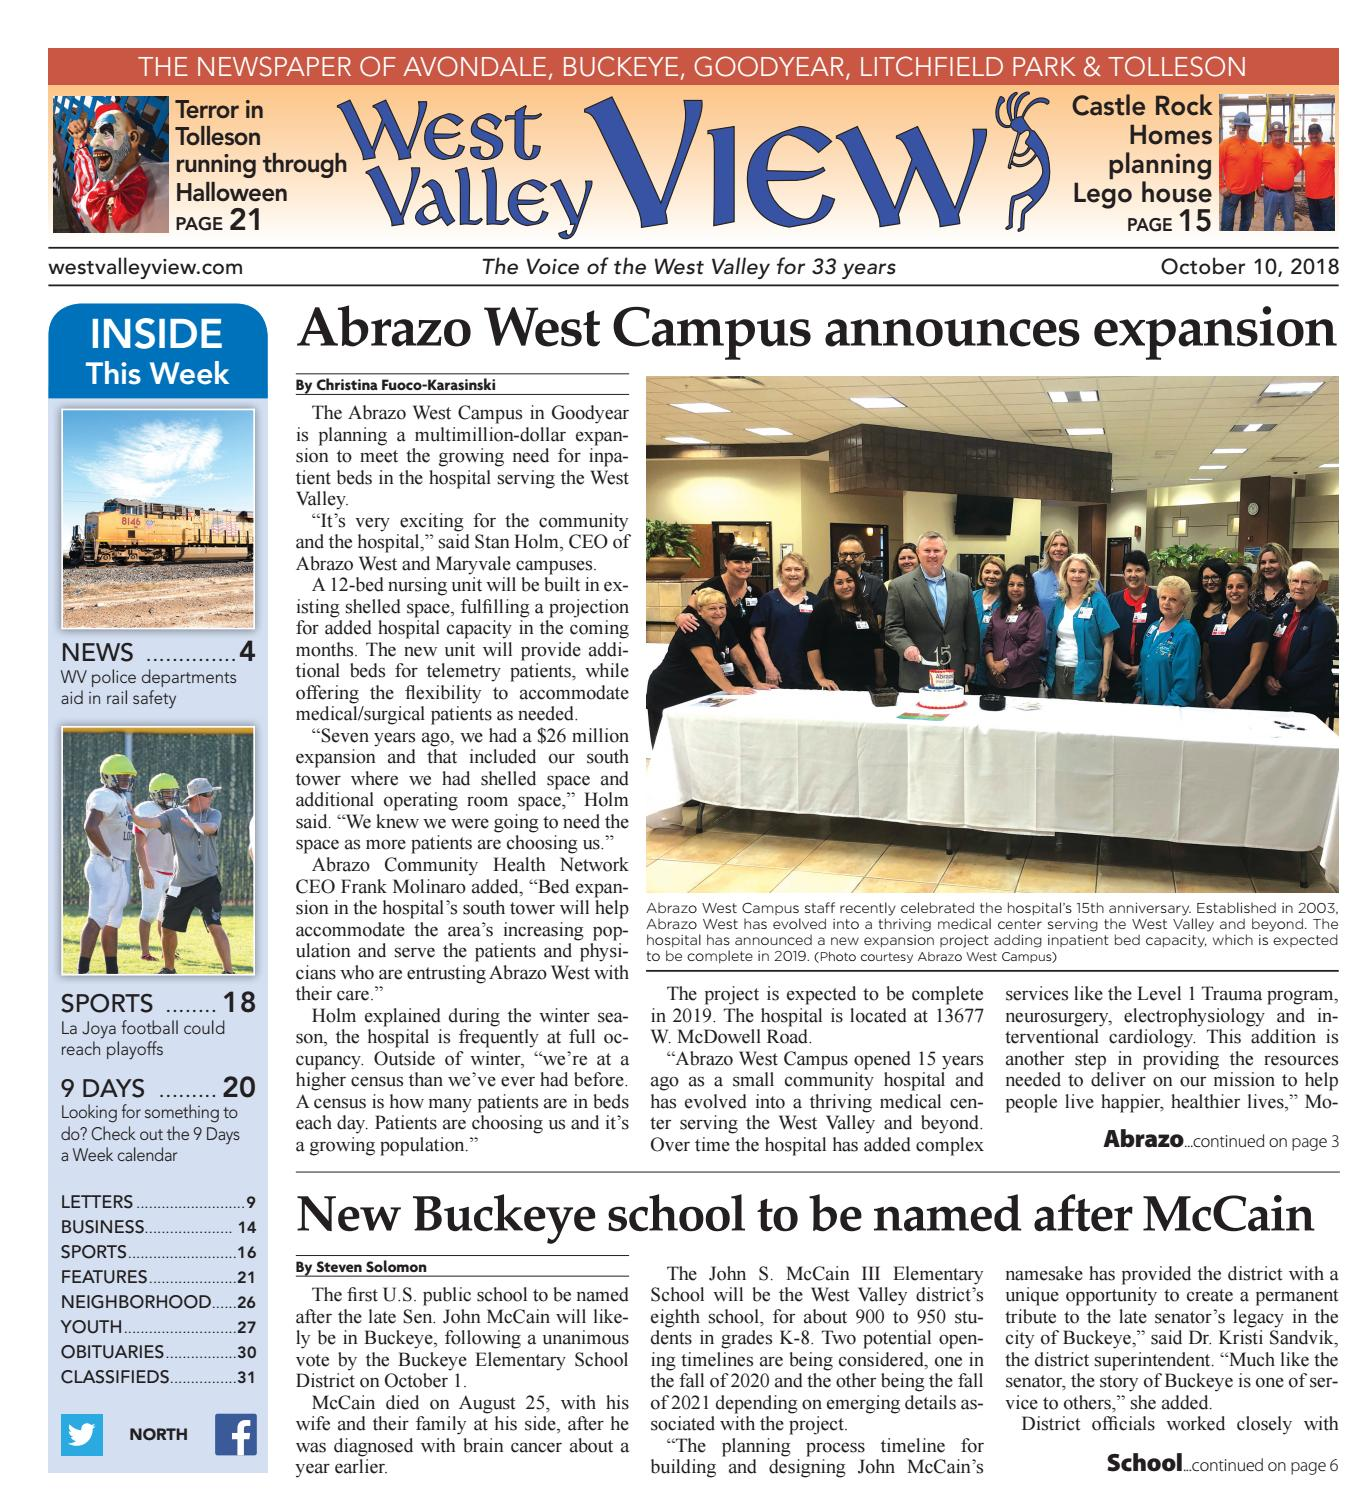 West Valley View: North October 10, 2018 by Times Media Group - issuu